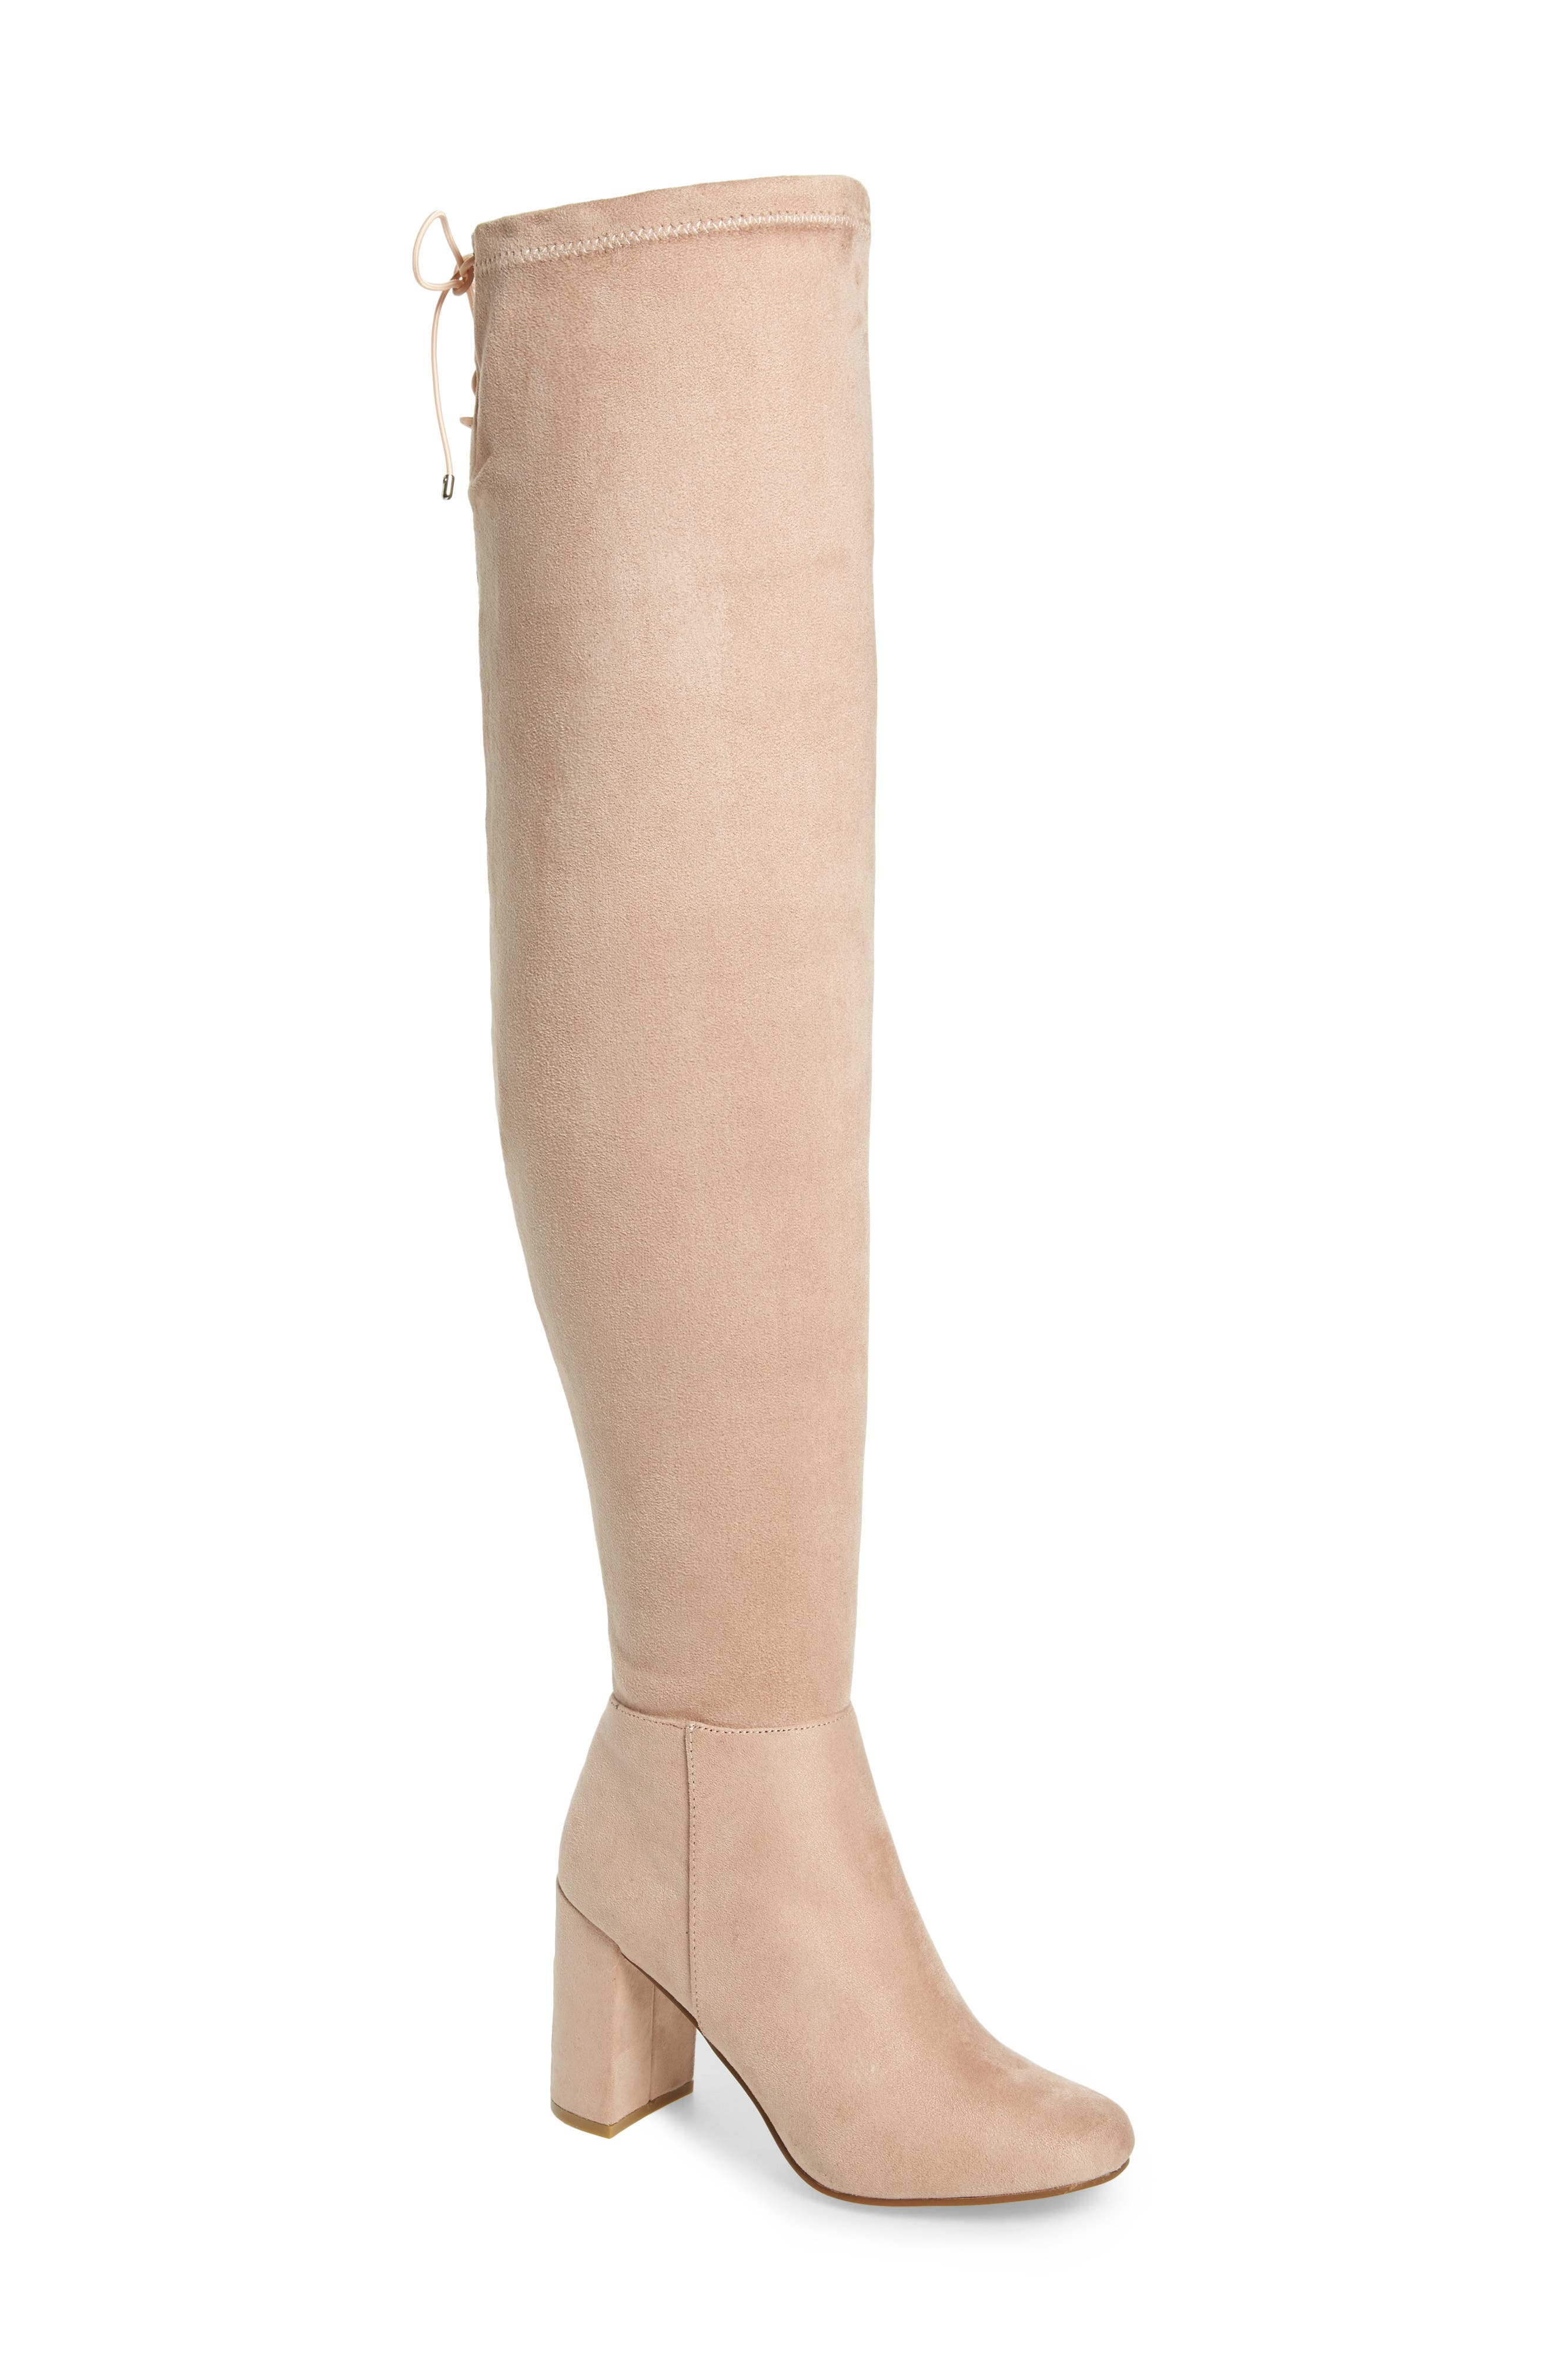 Main Image - Chinese Laundry Krush Over the Knee Boot (Women)